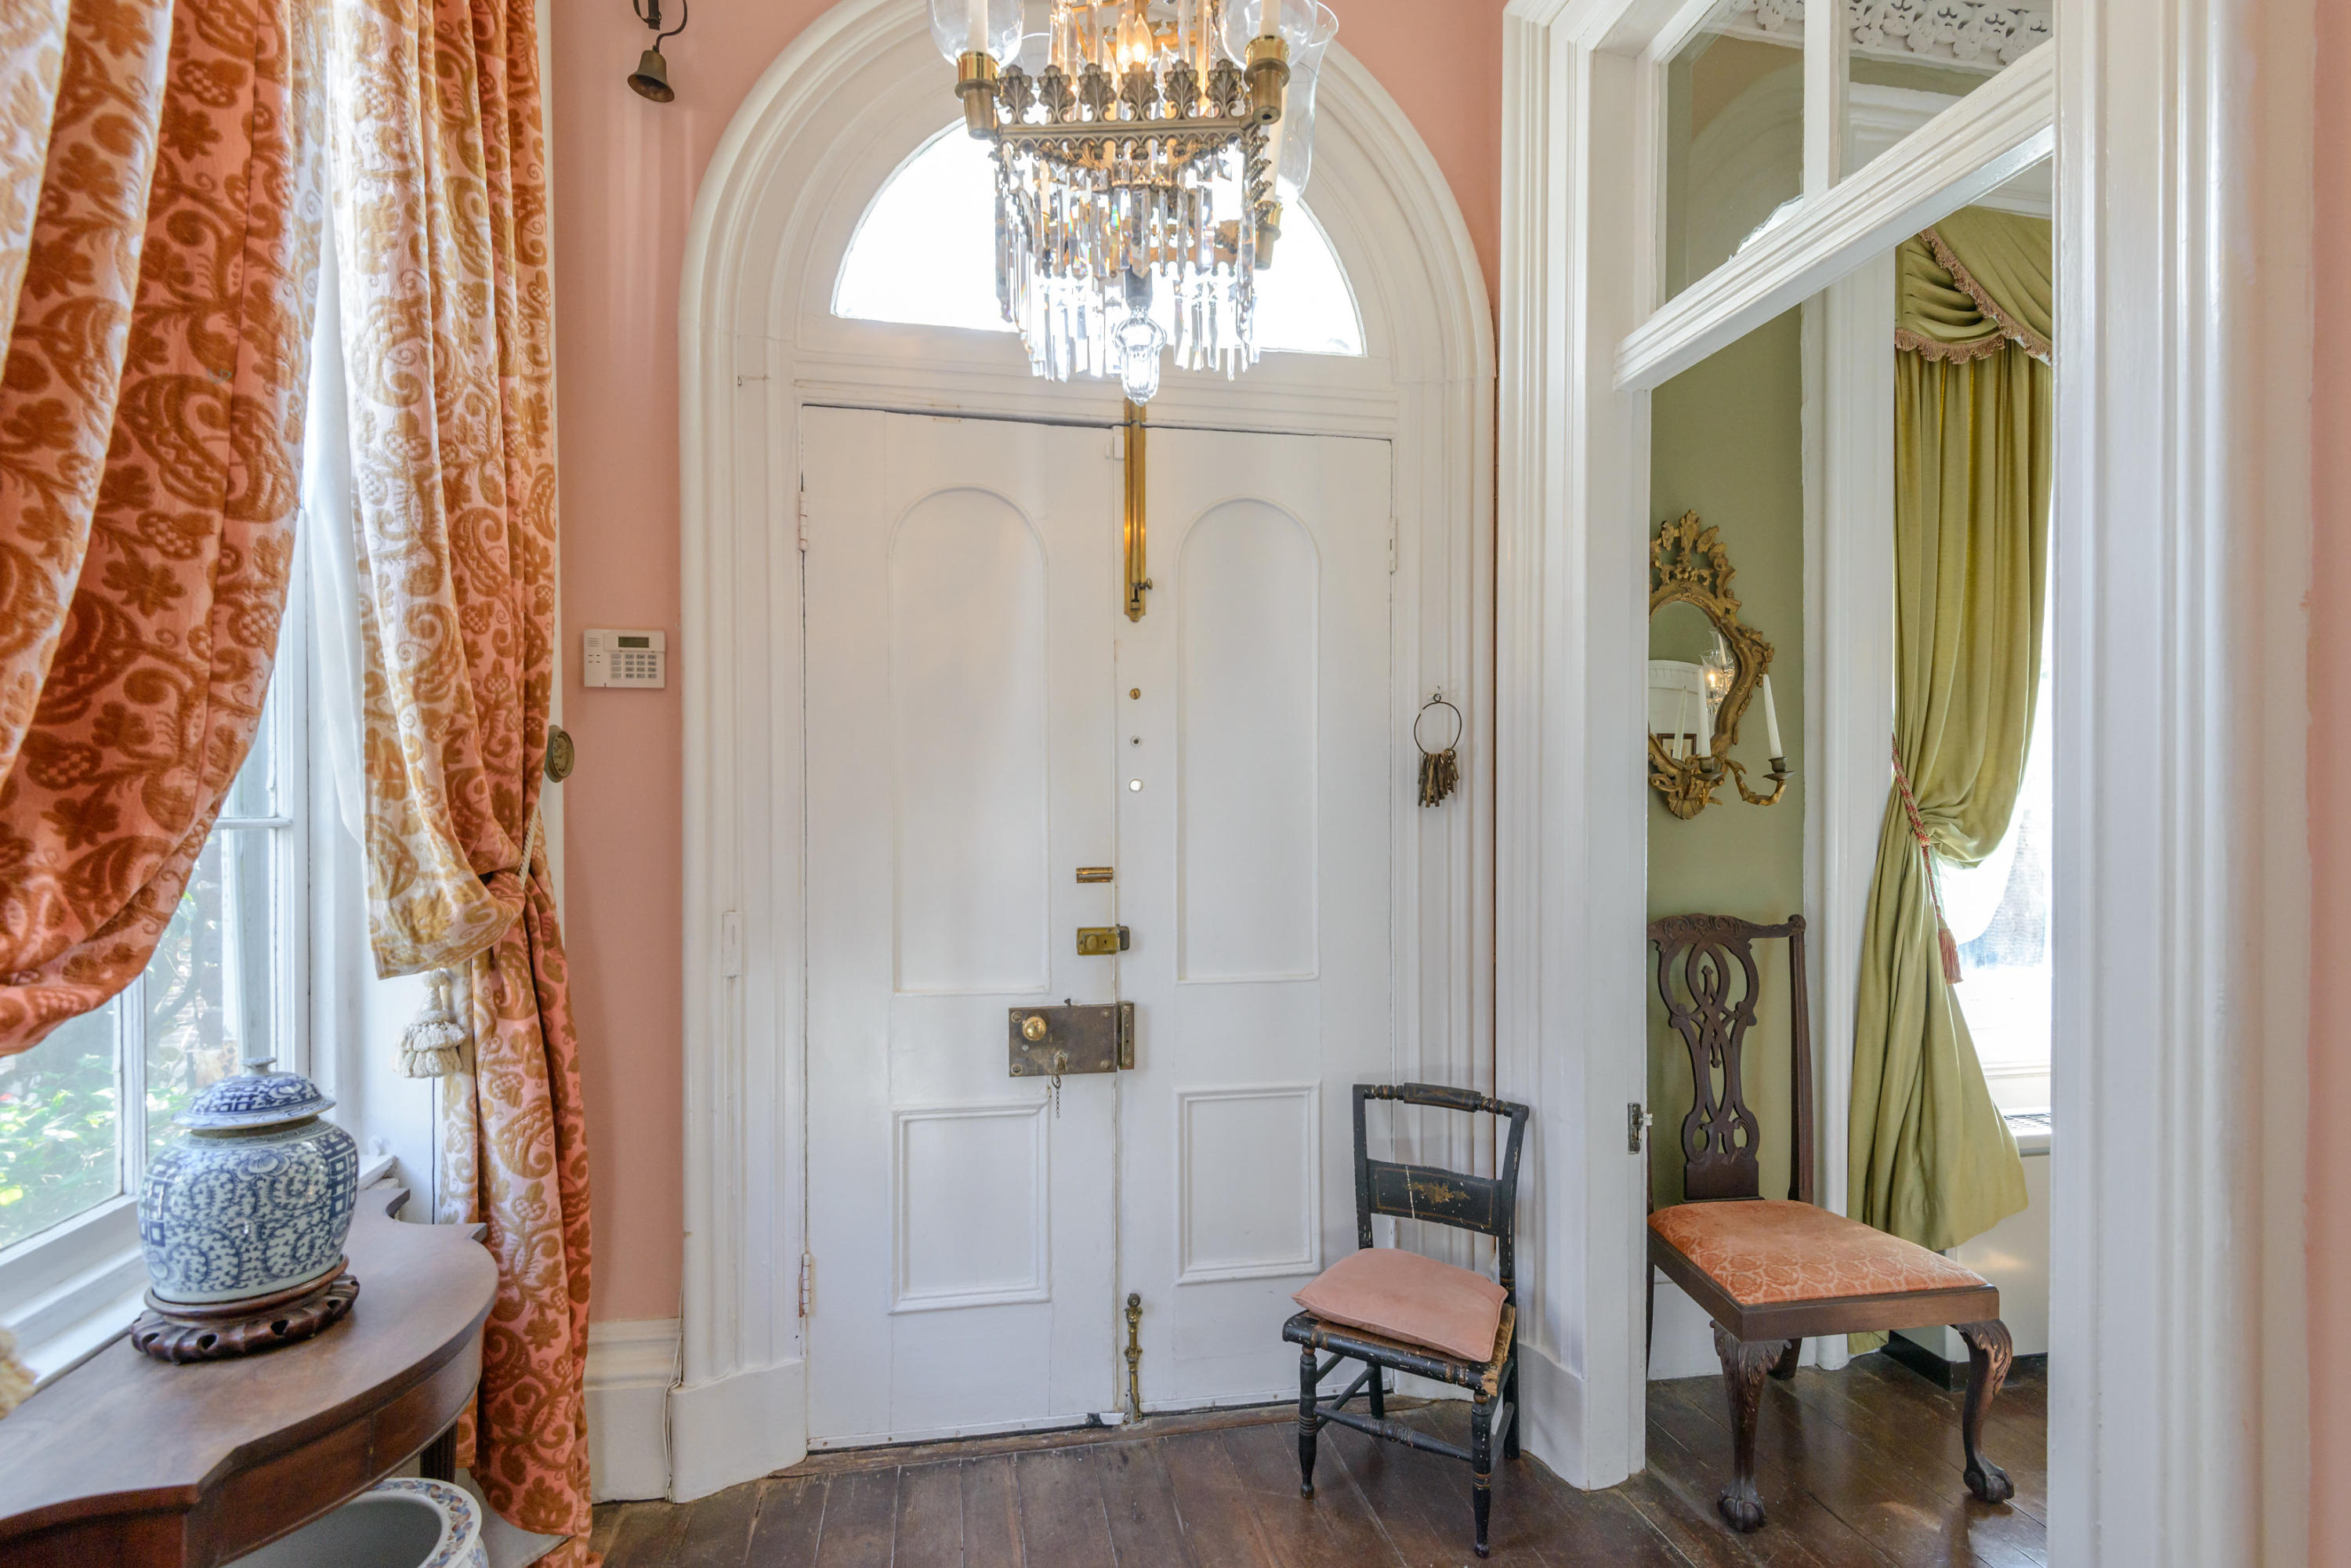 South of Broad Homes For Sale - 9 Limehouse, Charleston, SC - 23